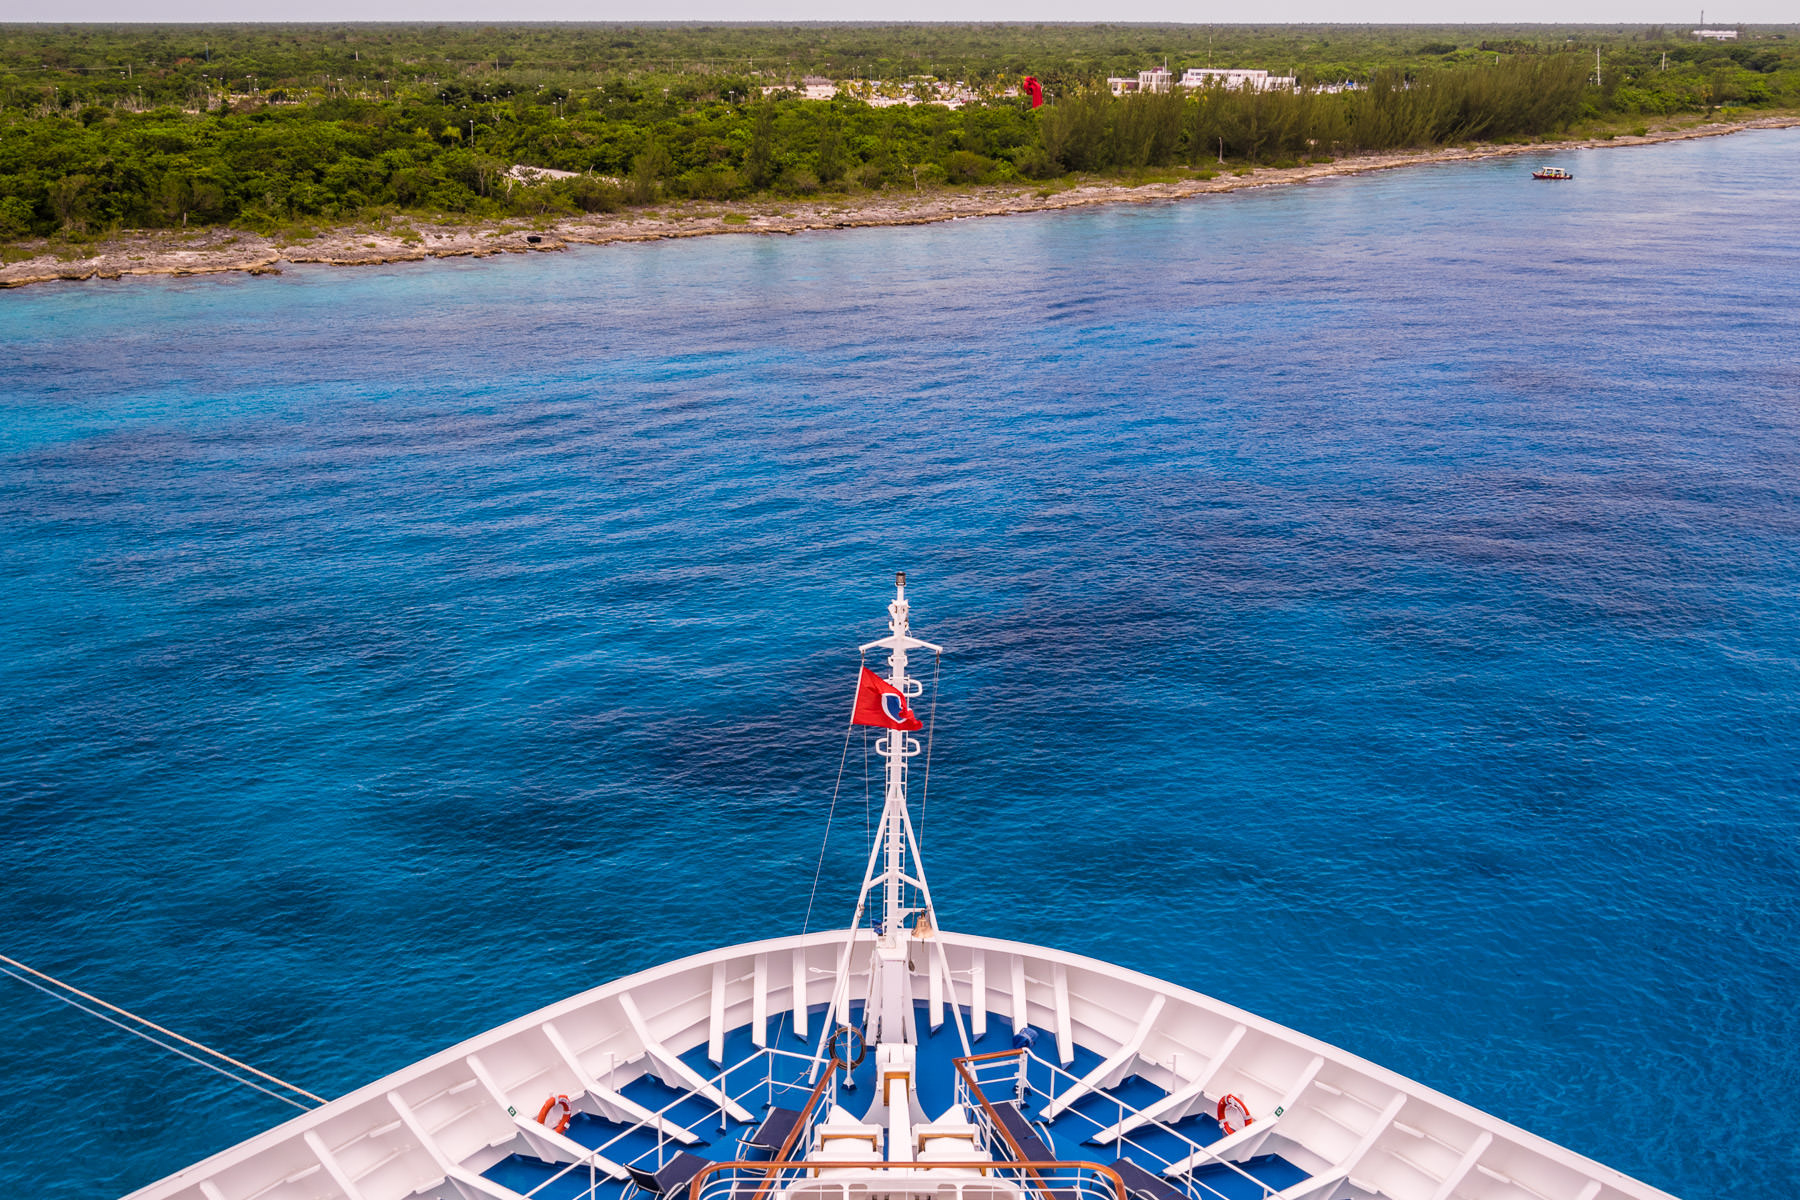 The bow of the cruise shipCarnival Breeze floats in the blue waters just off the coast of Cozumel, Mexico.